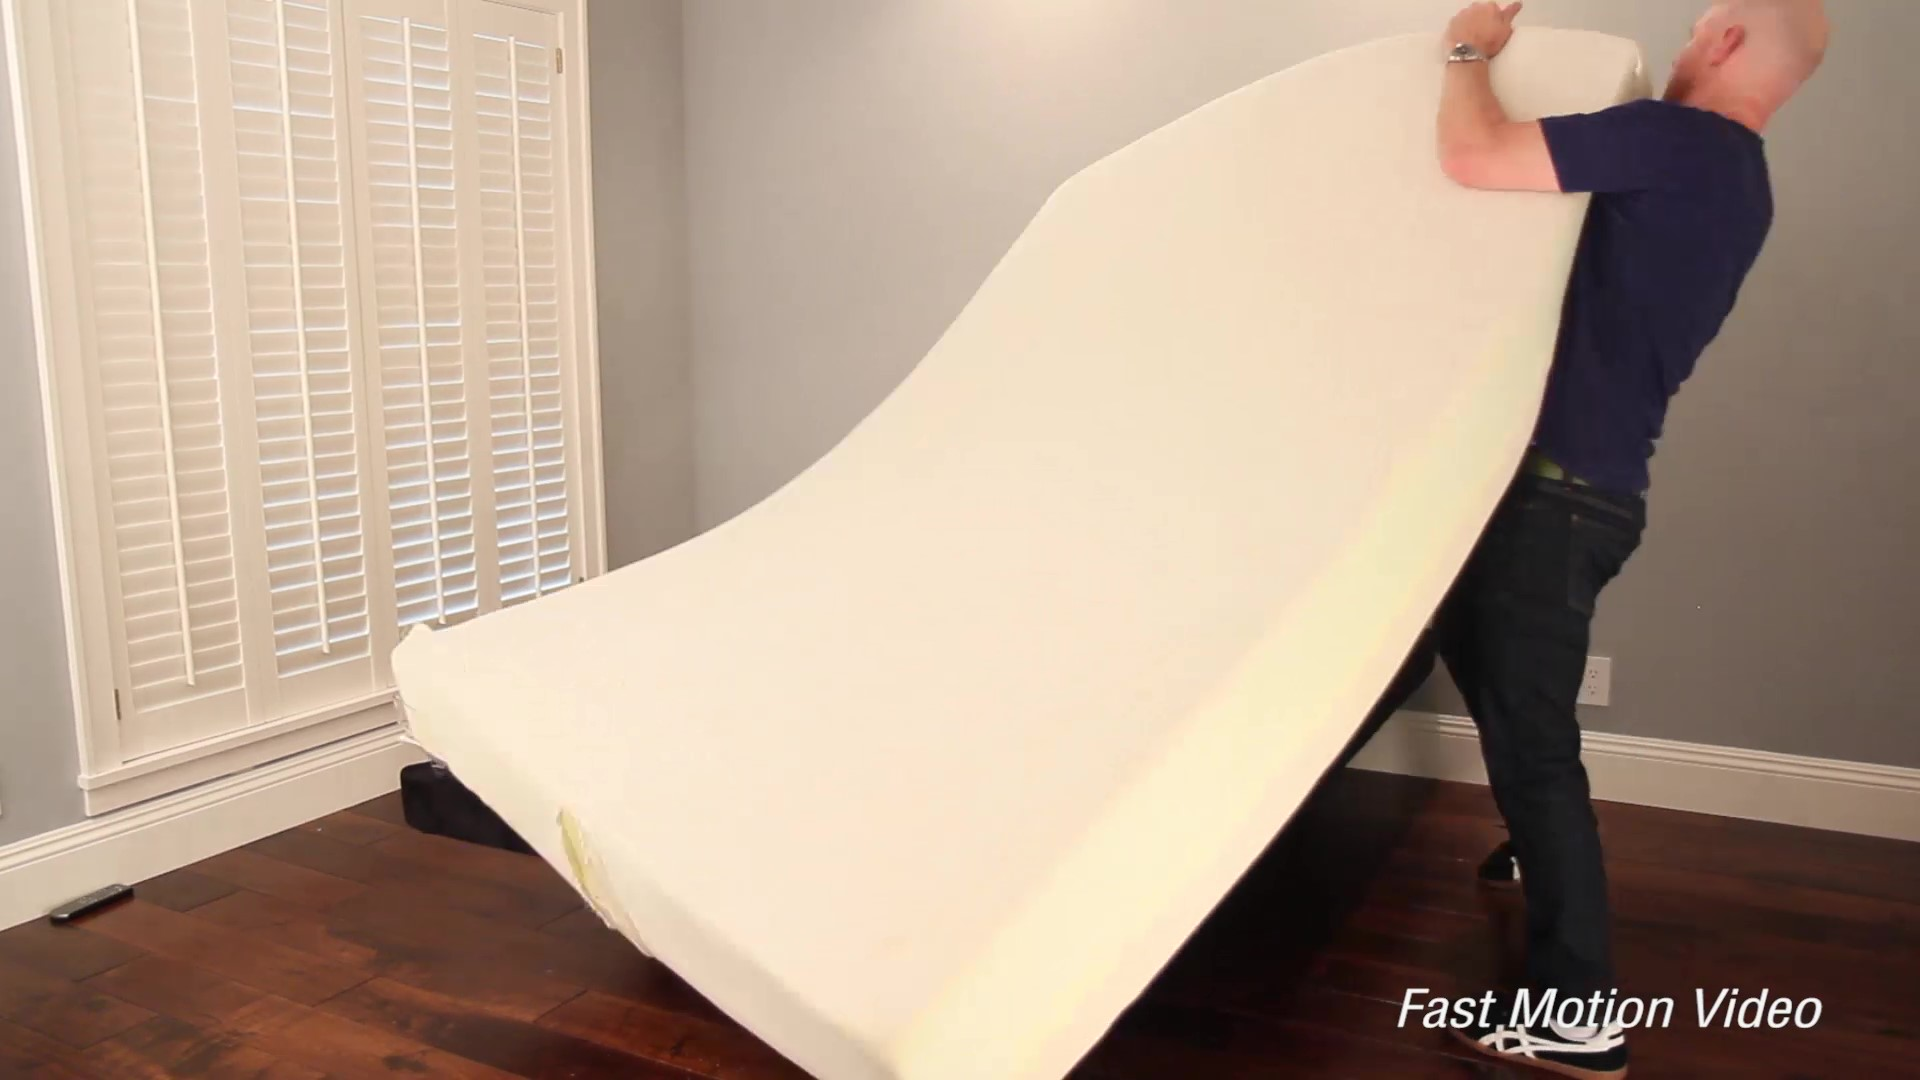 Flipping over the Layla Mattress